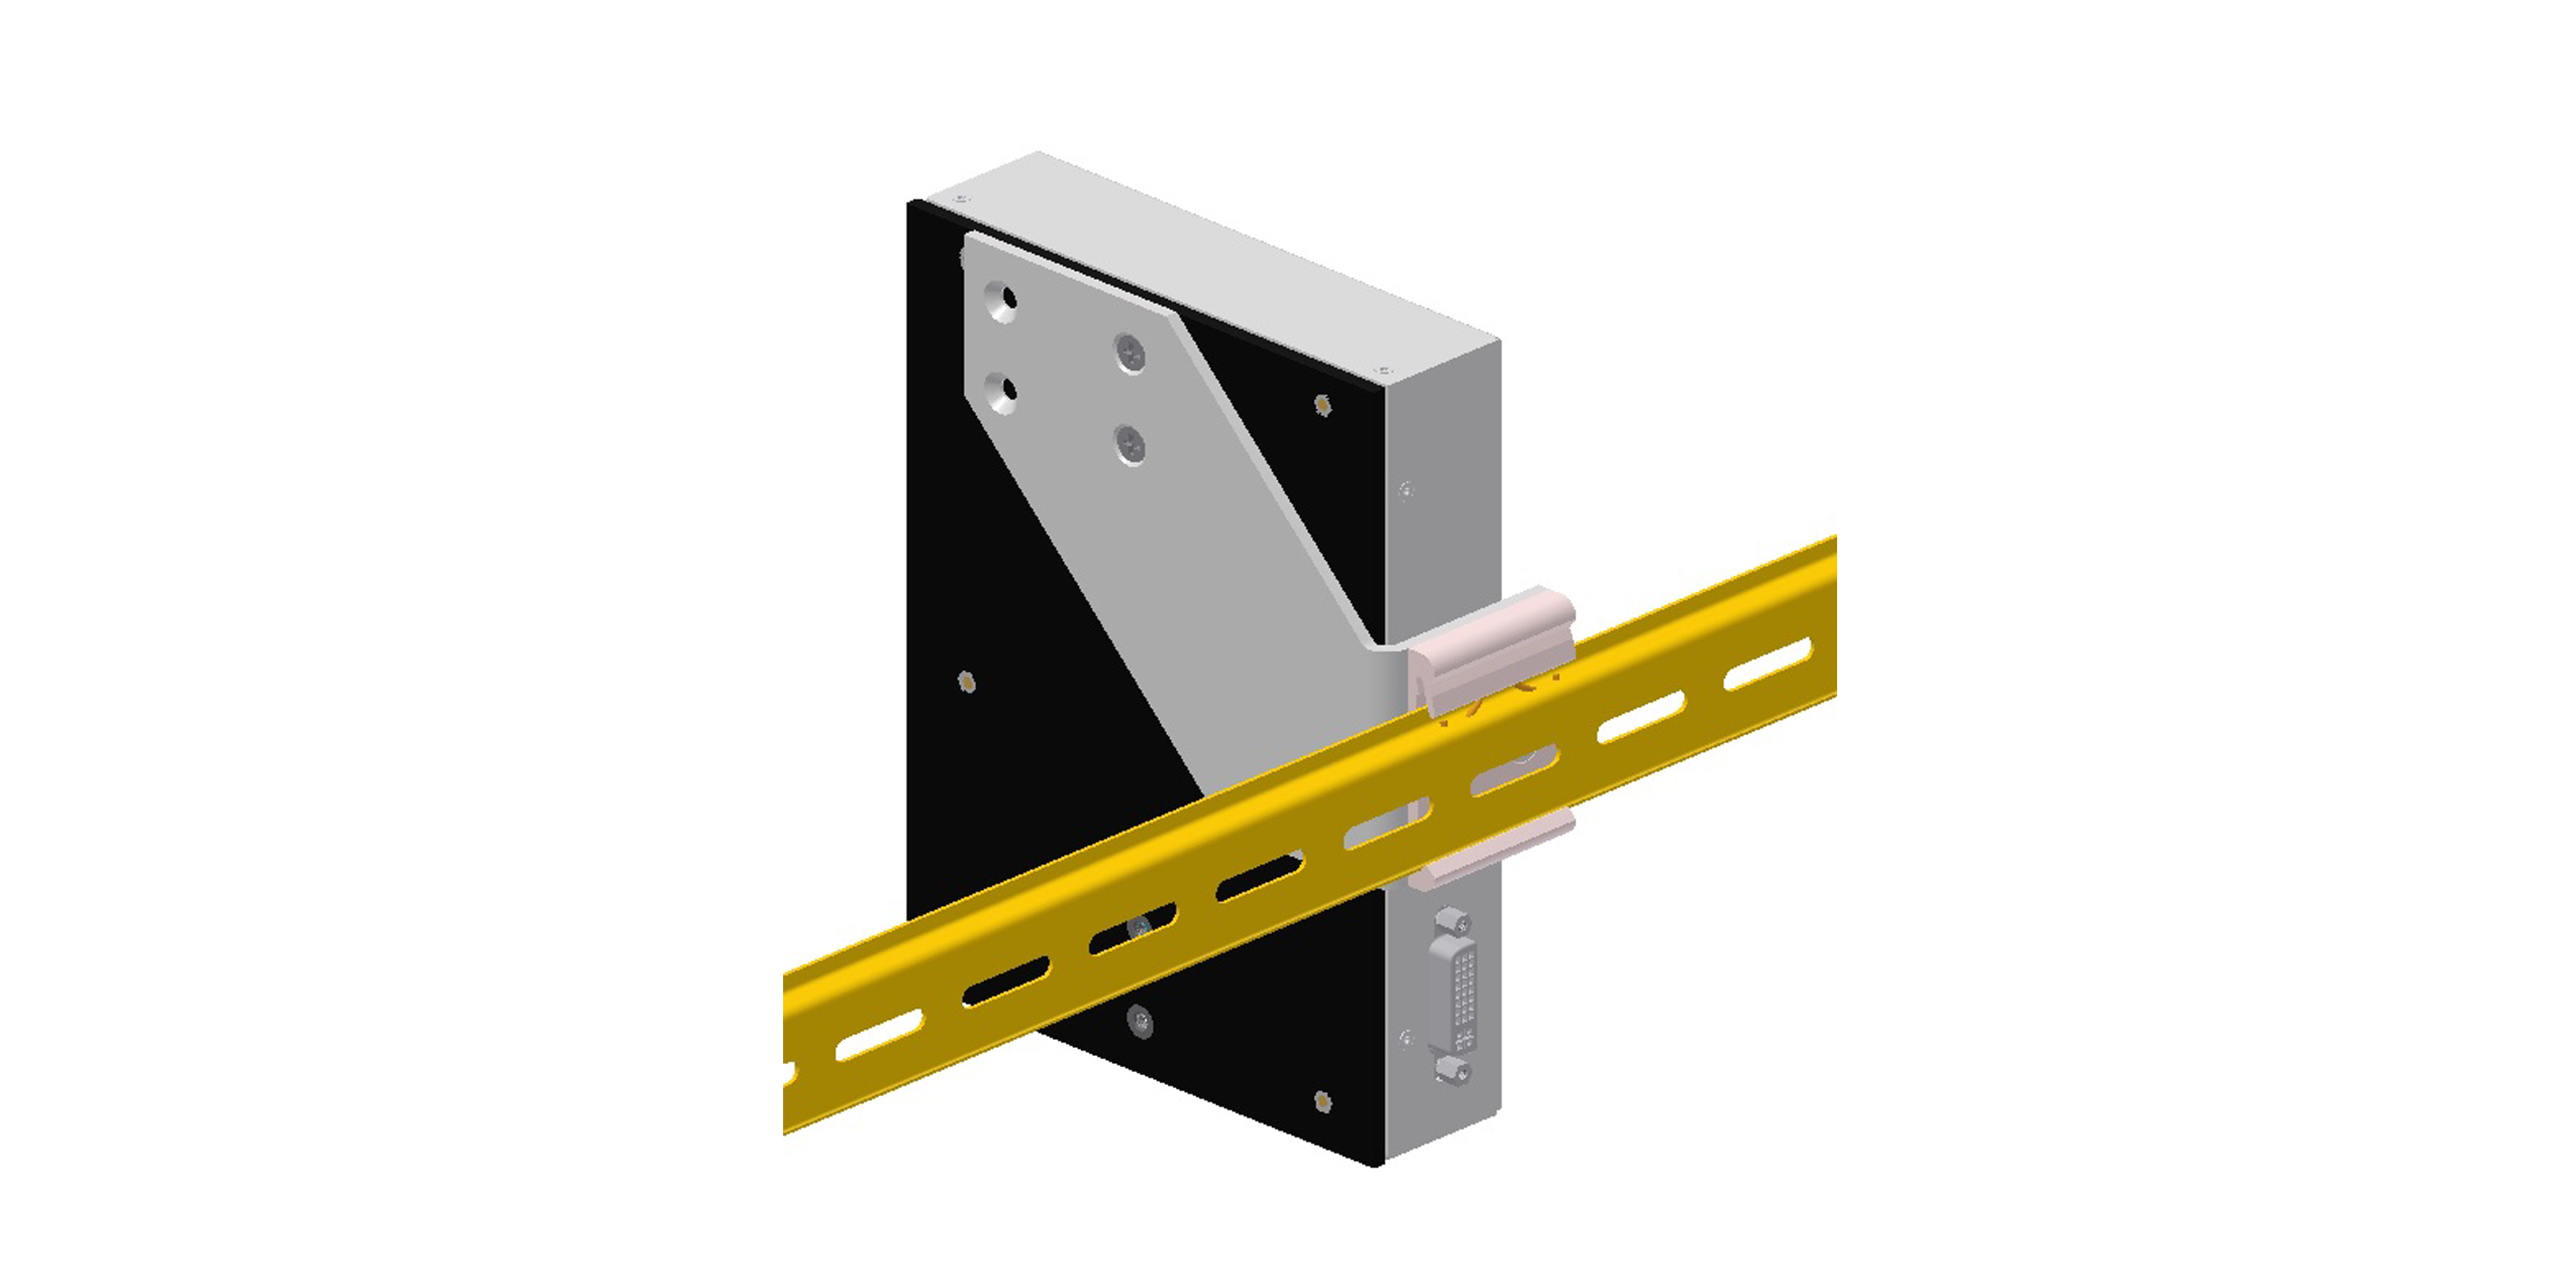 Rear Mounting Kit for Syslogic Industrial PC's